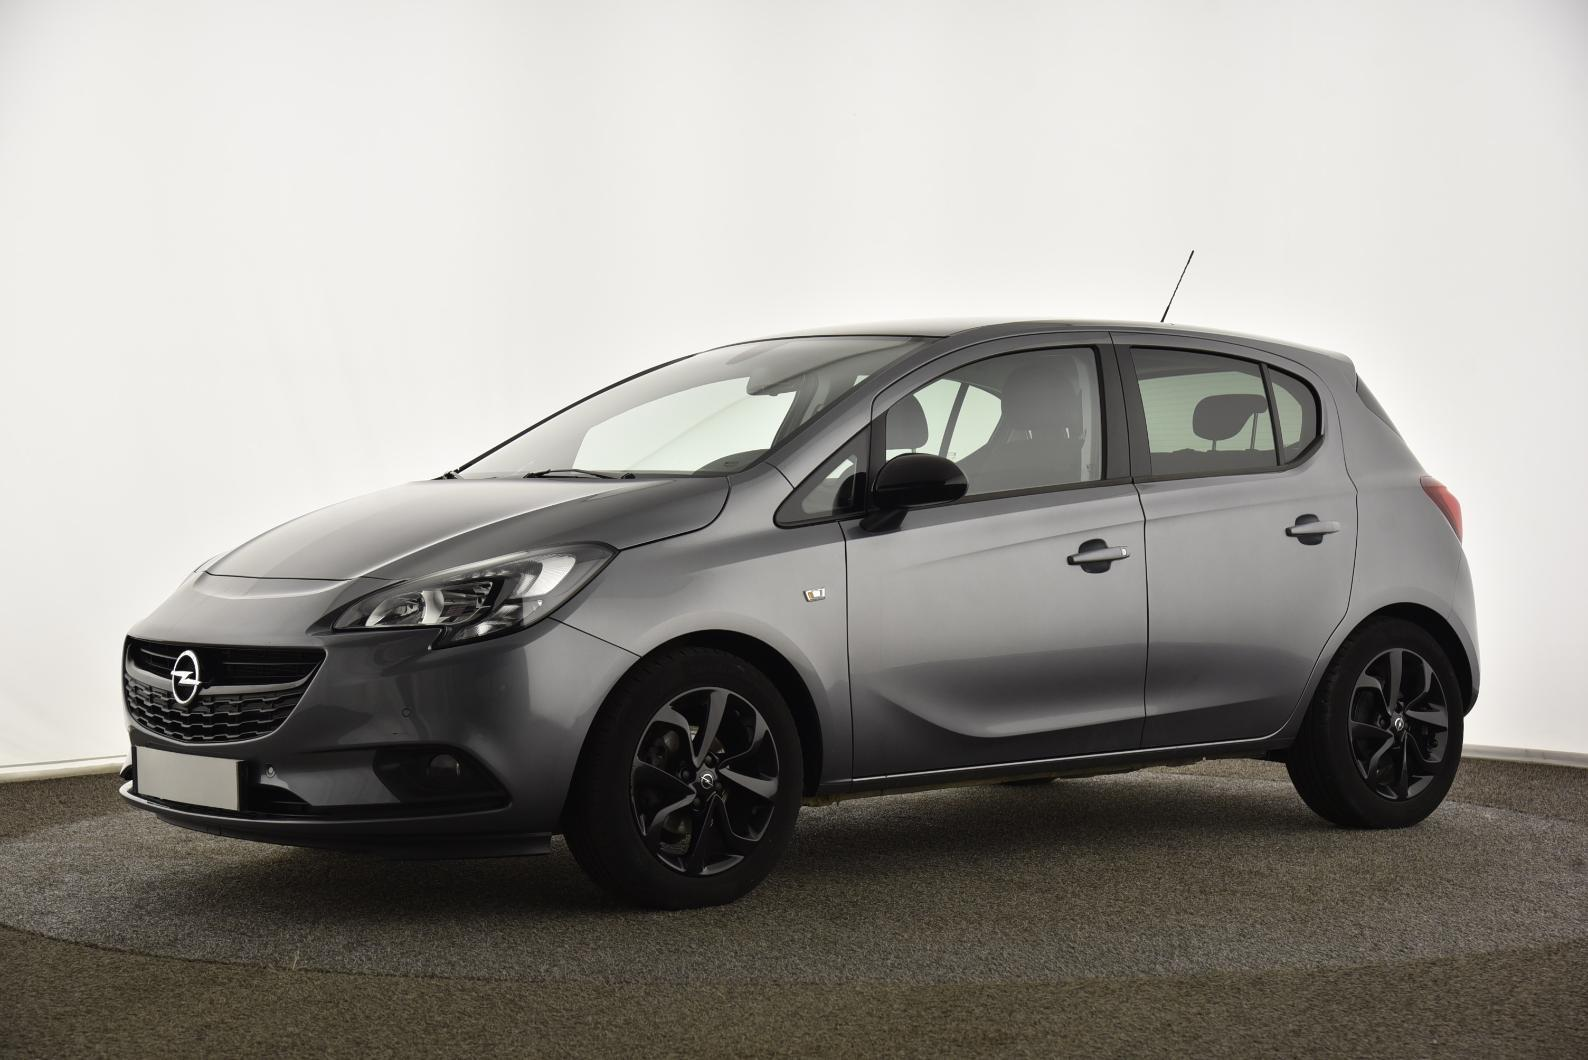 OPEL CORSA 1.4 90 ch Color Edition